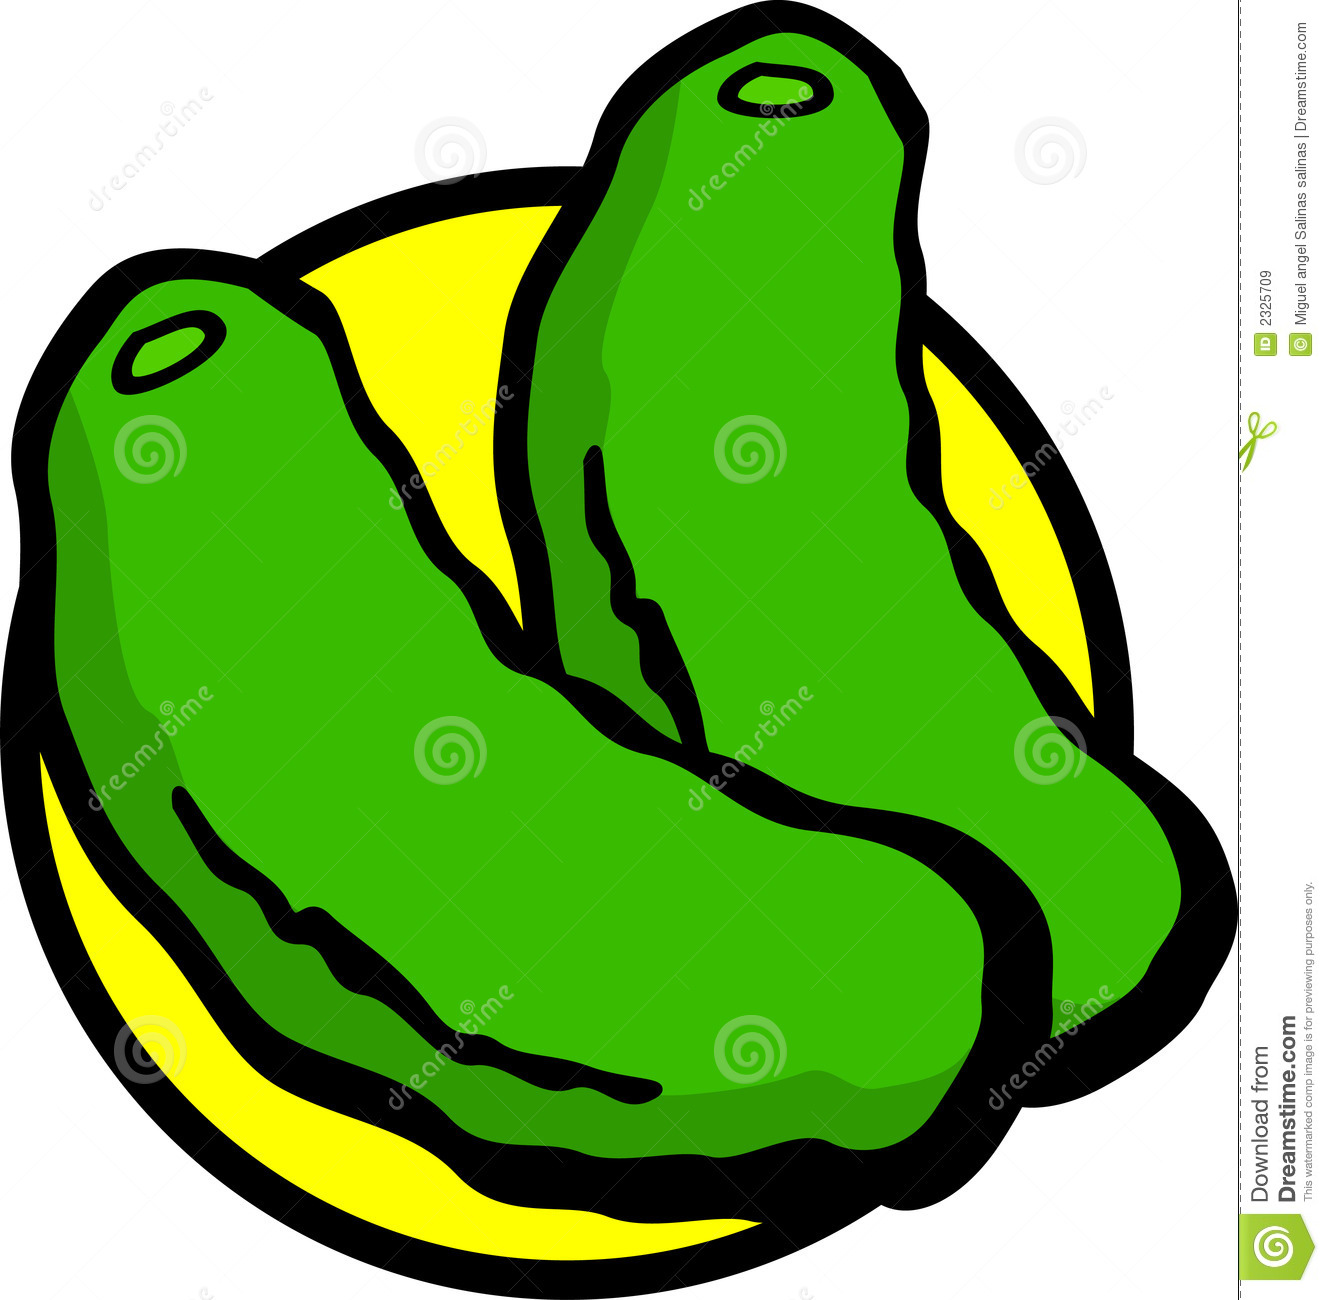 Pickle 20clipart.